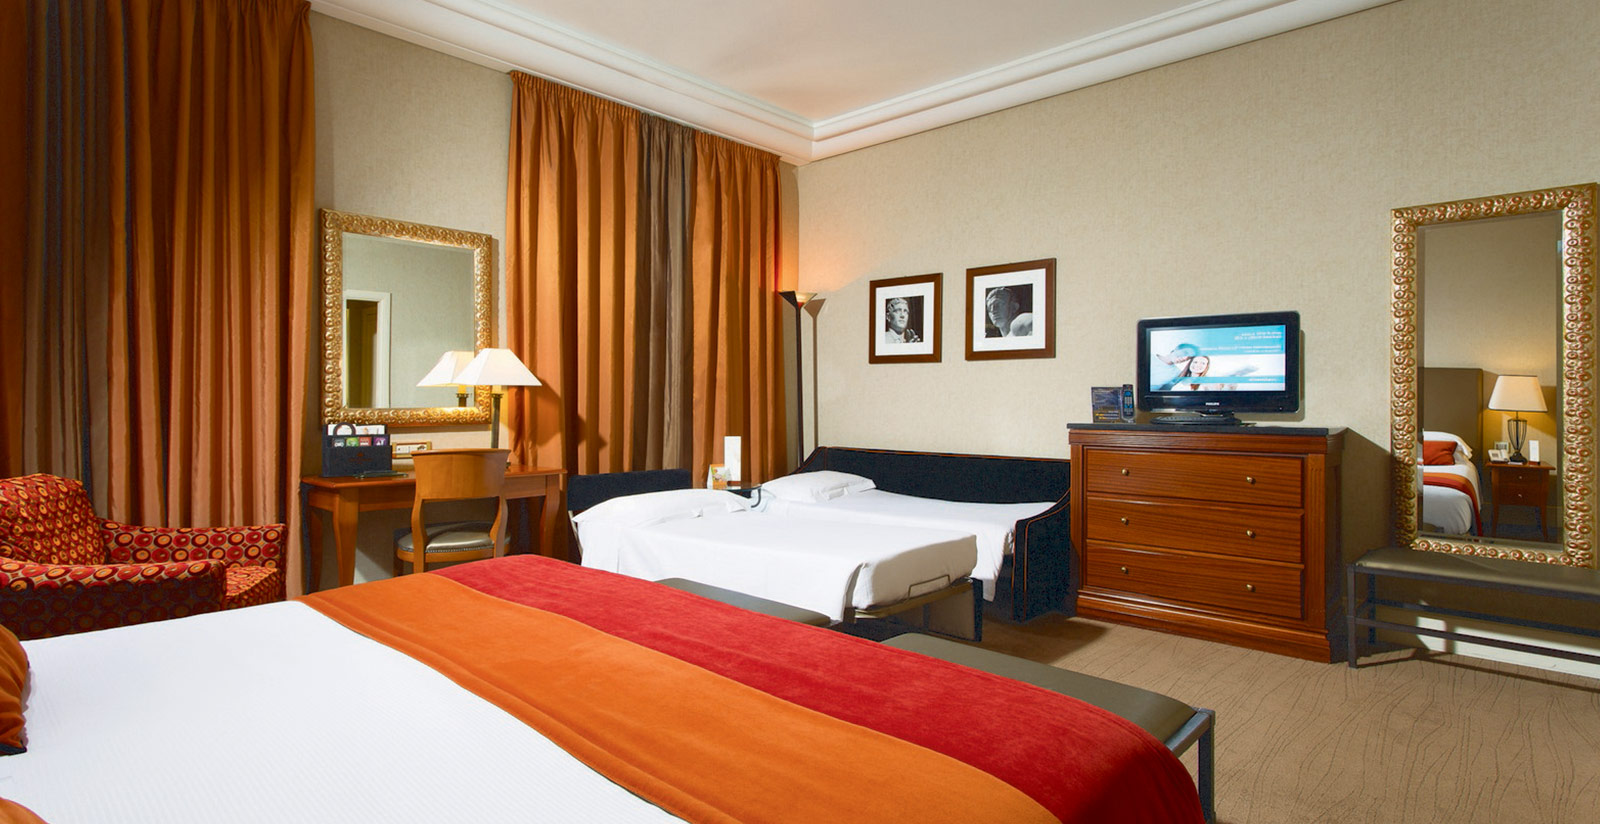 Mellini Hotel Family Accommodation In Rome Book Now A